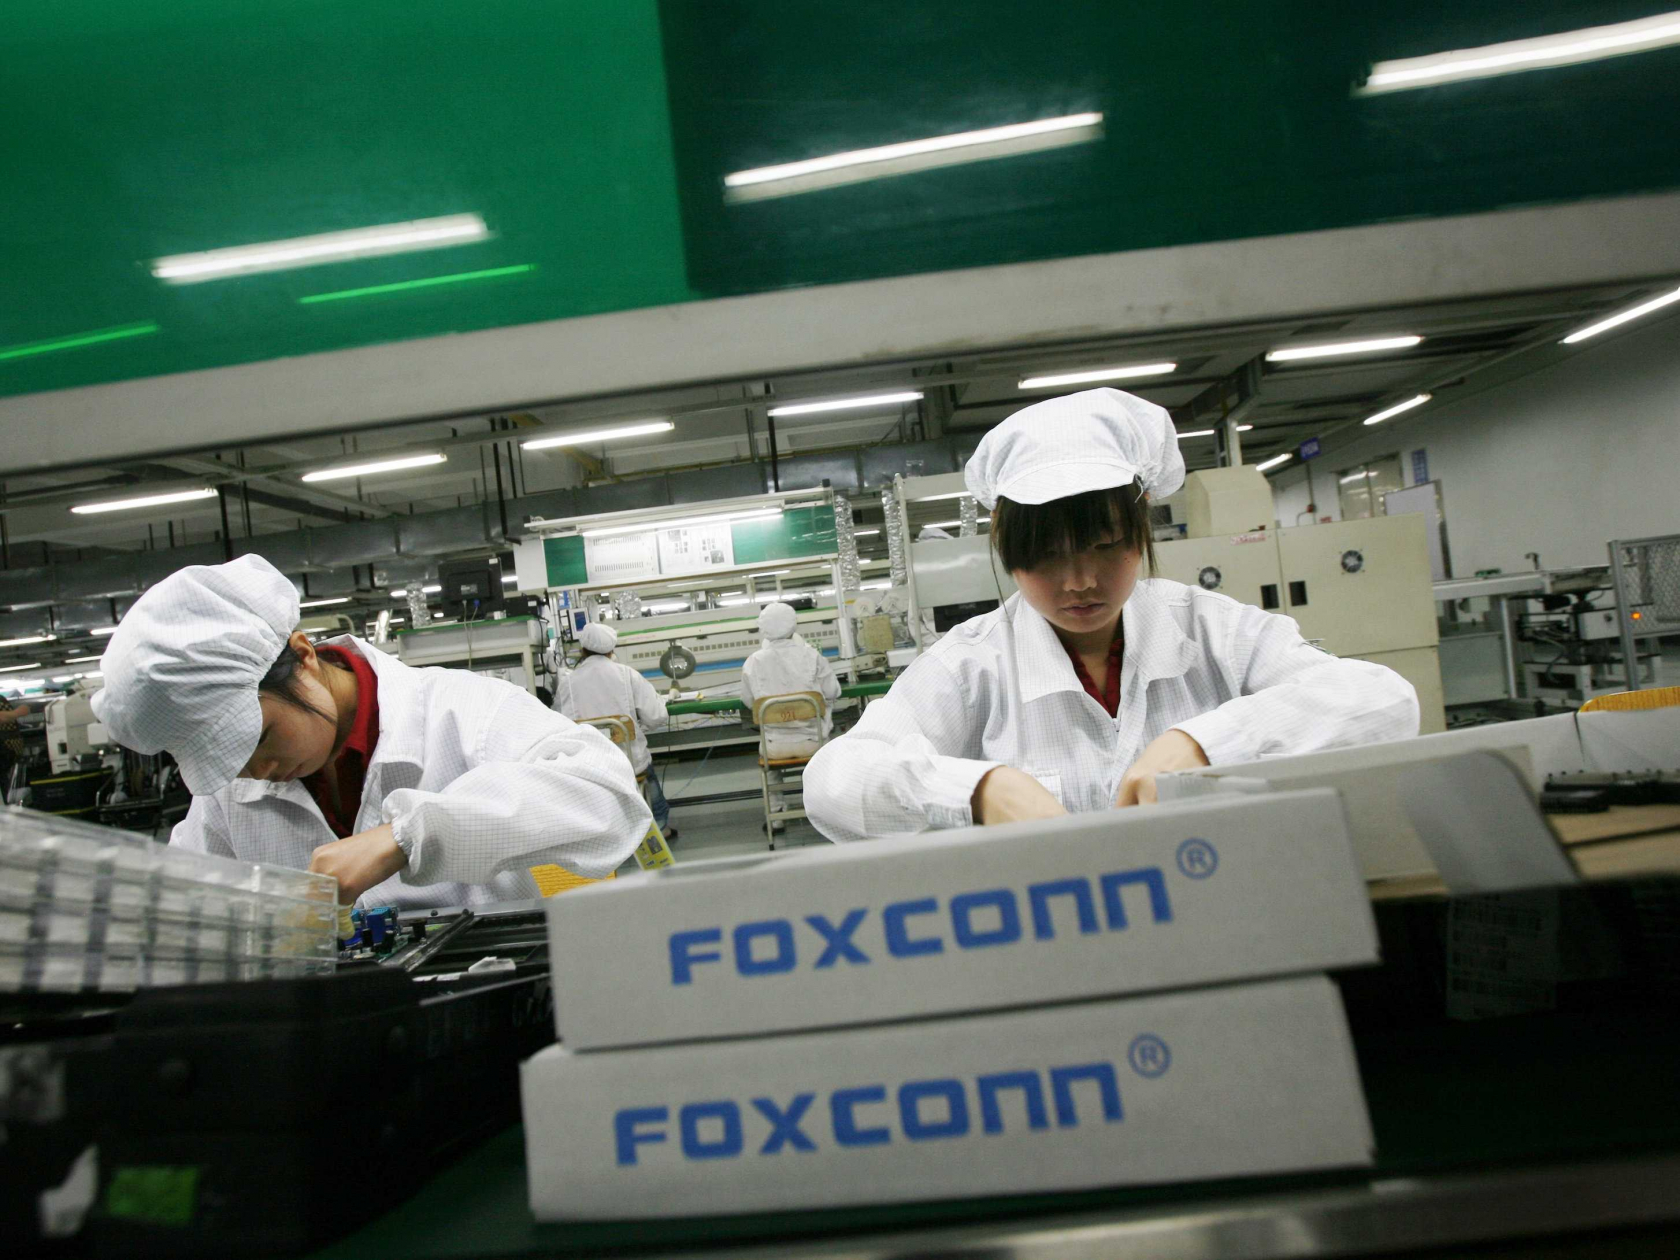 Foxconn chooses Mount Pleasant, Wisconsin for its $10 billion manufacturing facility